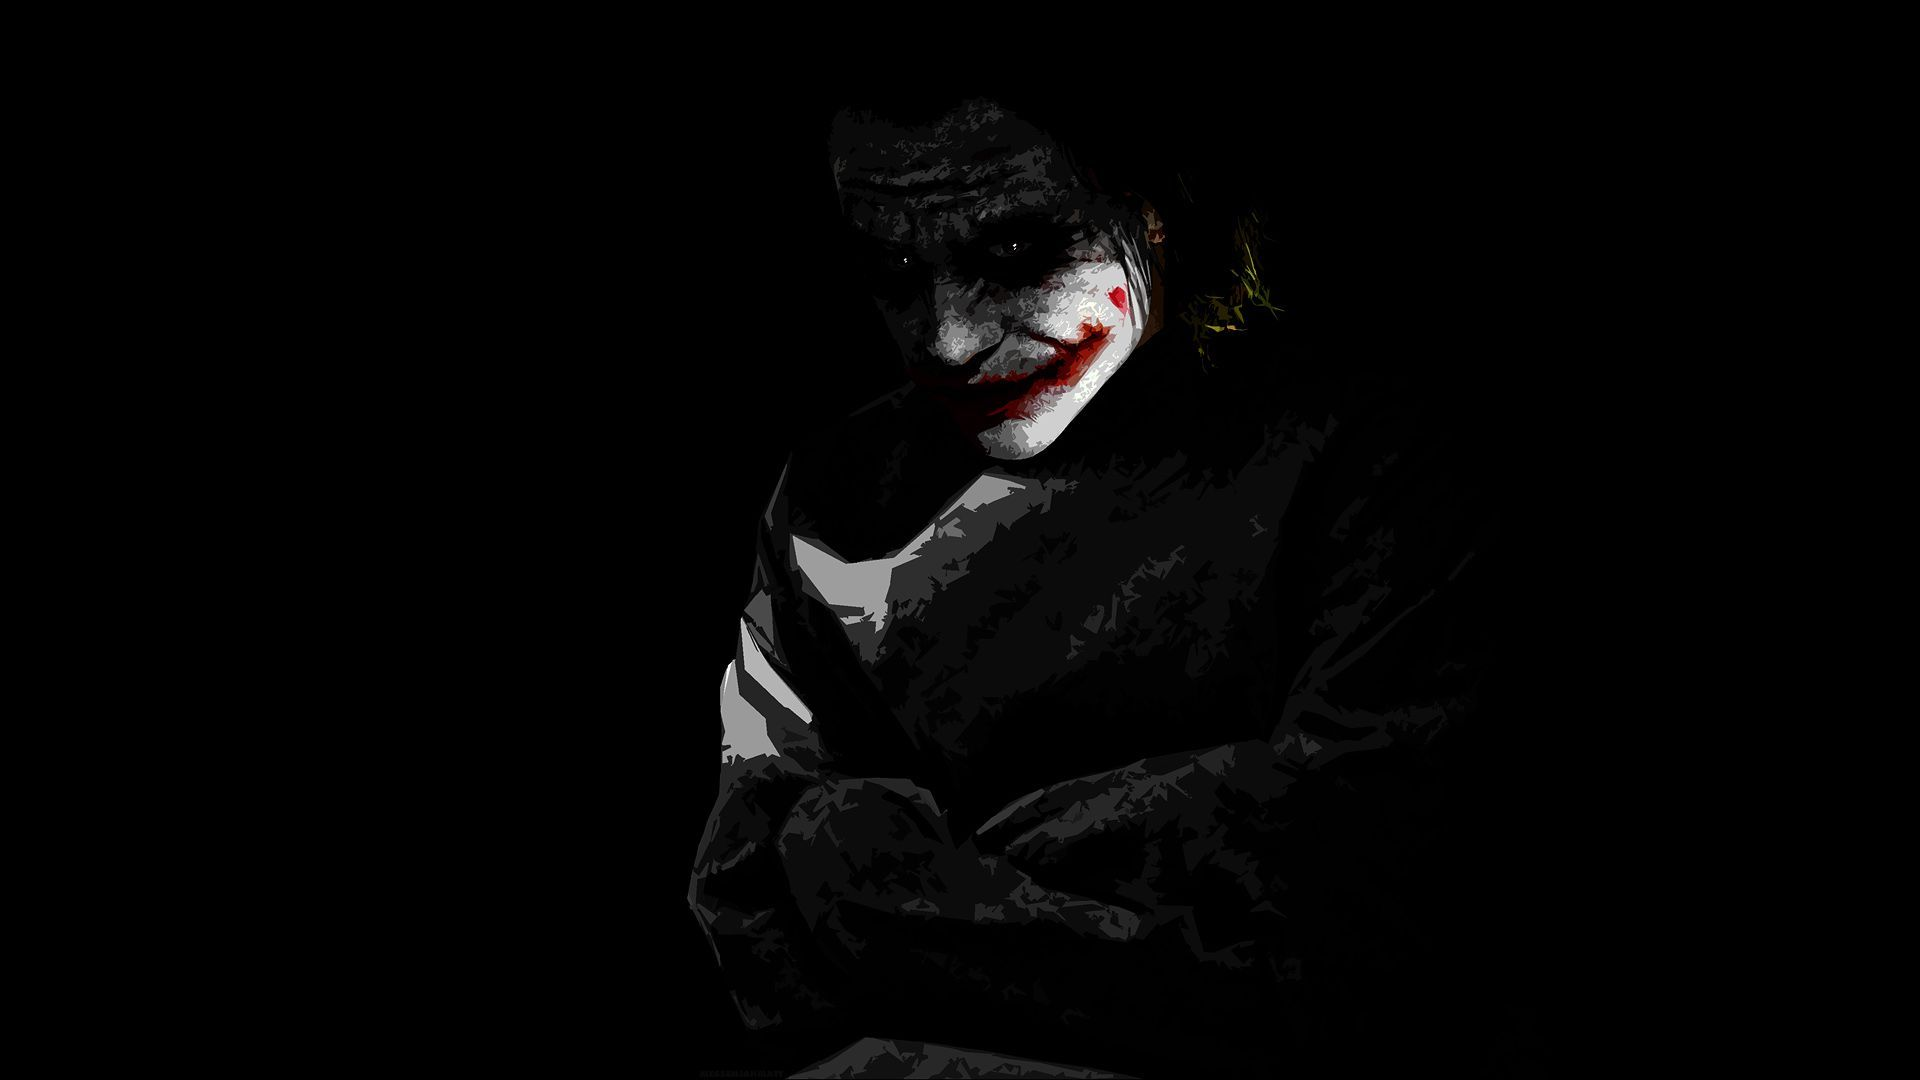 Joker HD Wallpapers Desktop Backgrounds Mobile